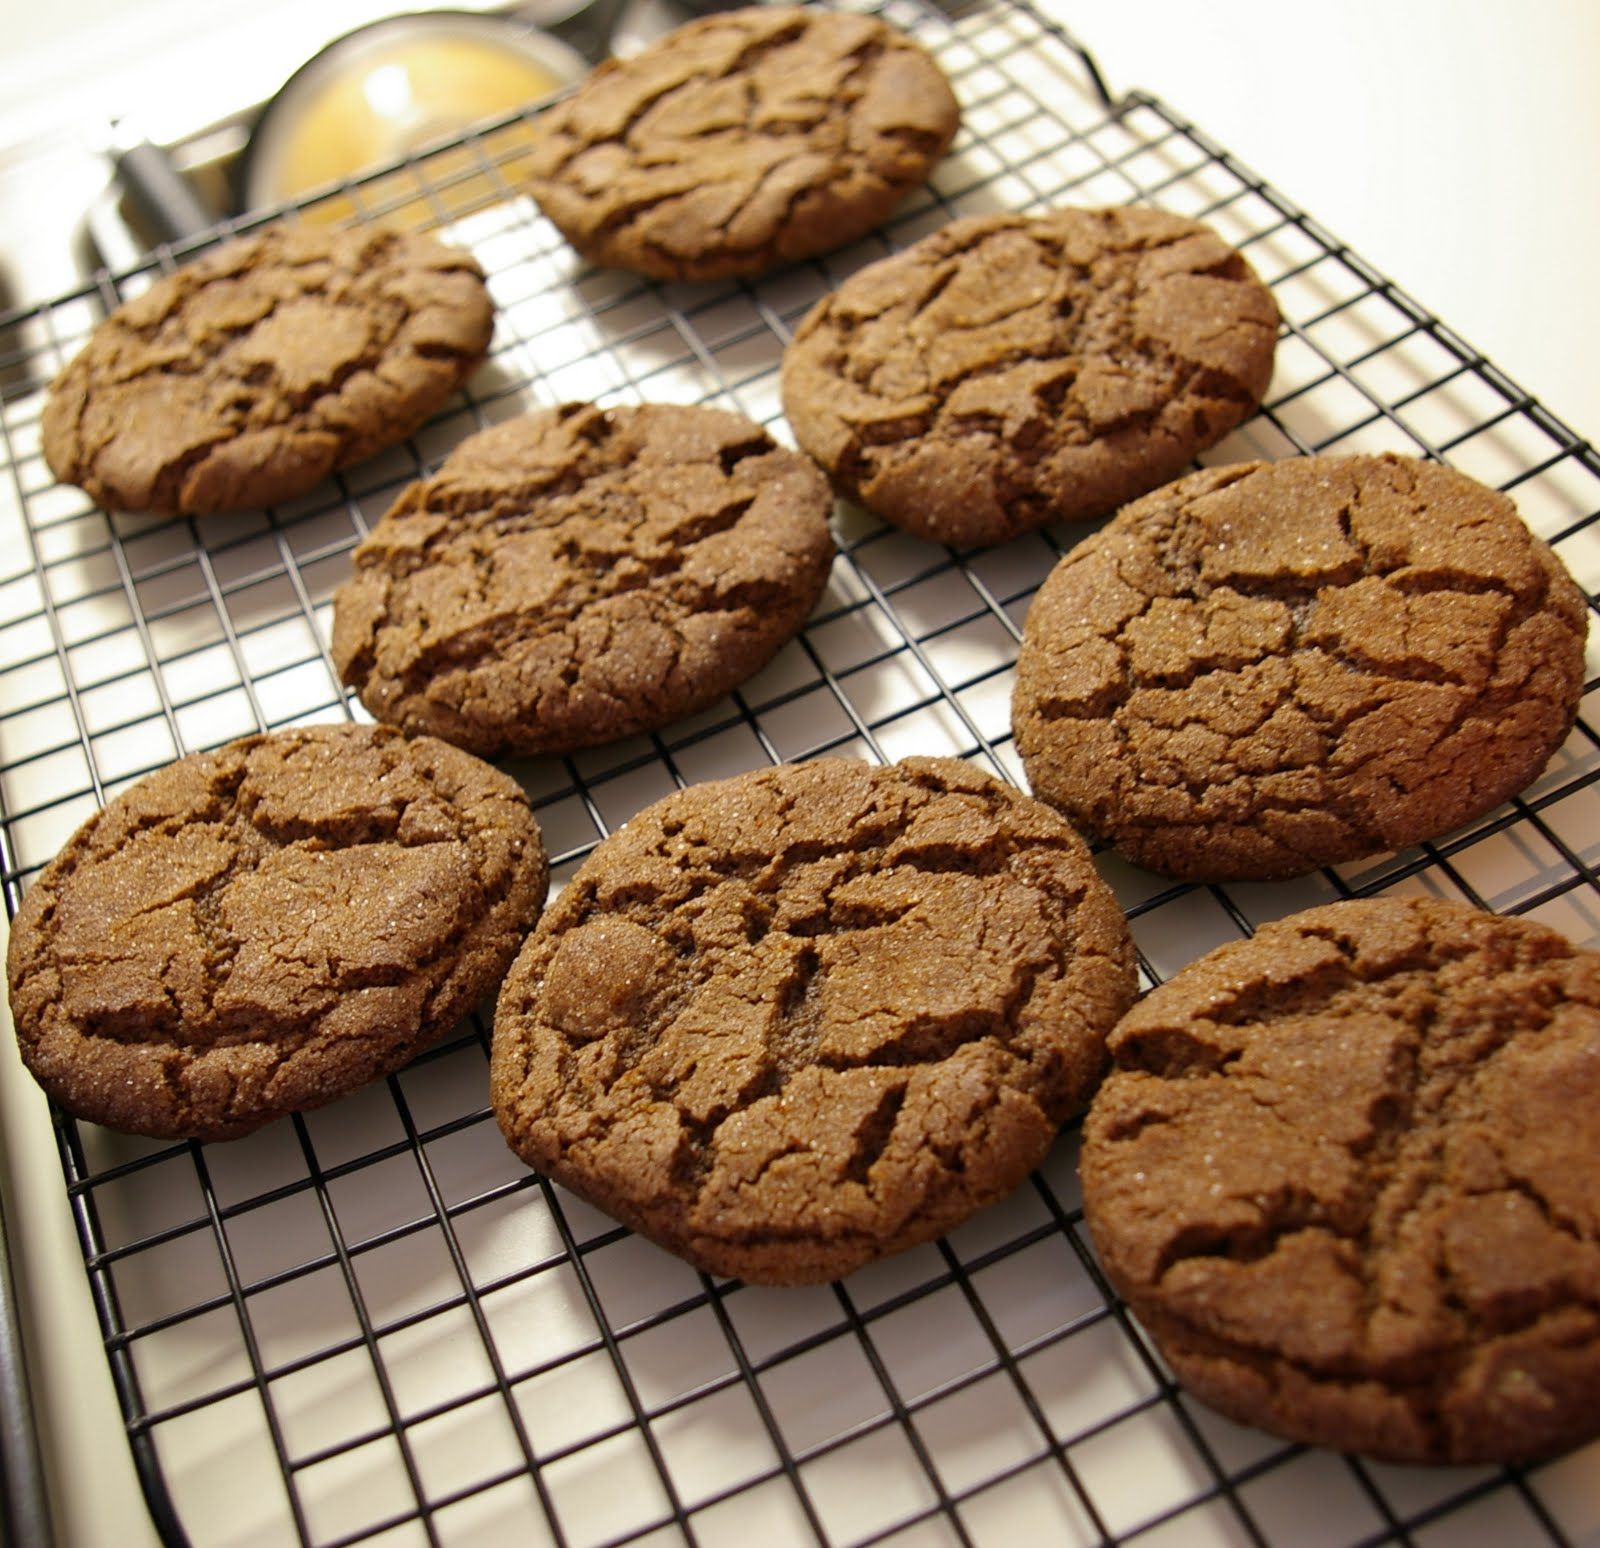 After baking, allow cookies to cool on sheets on wire racks for 5 ...